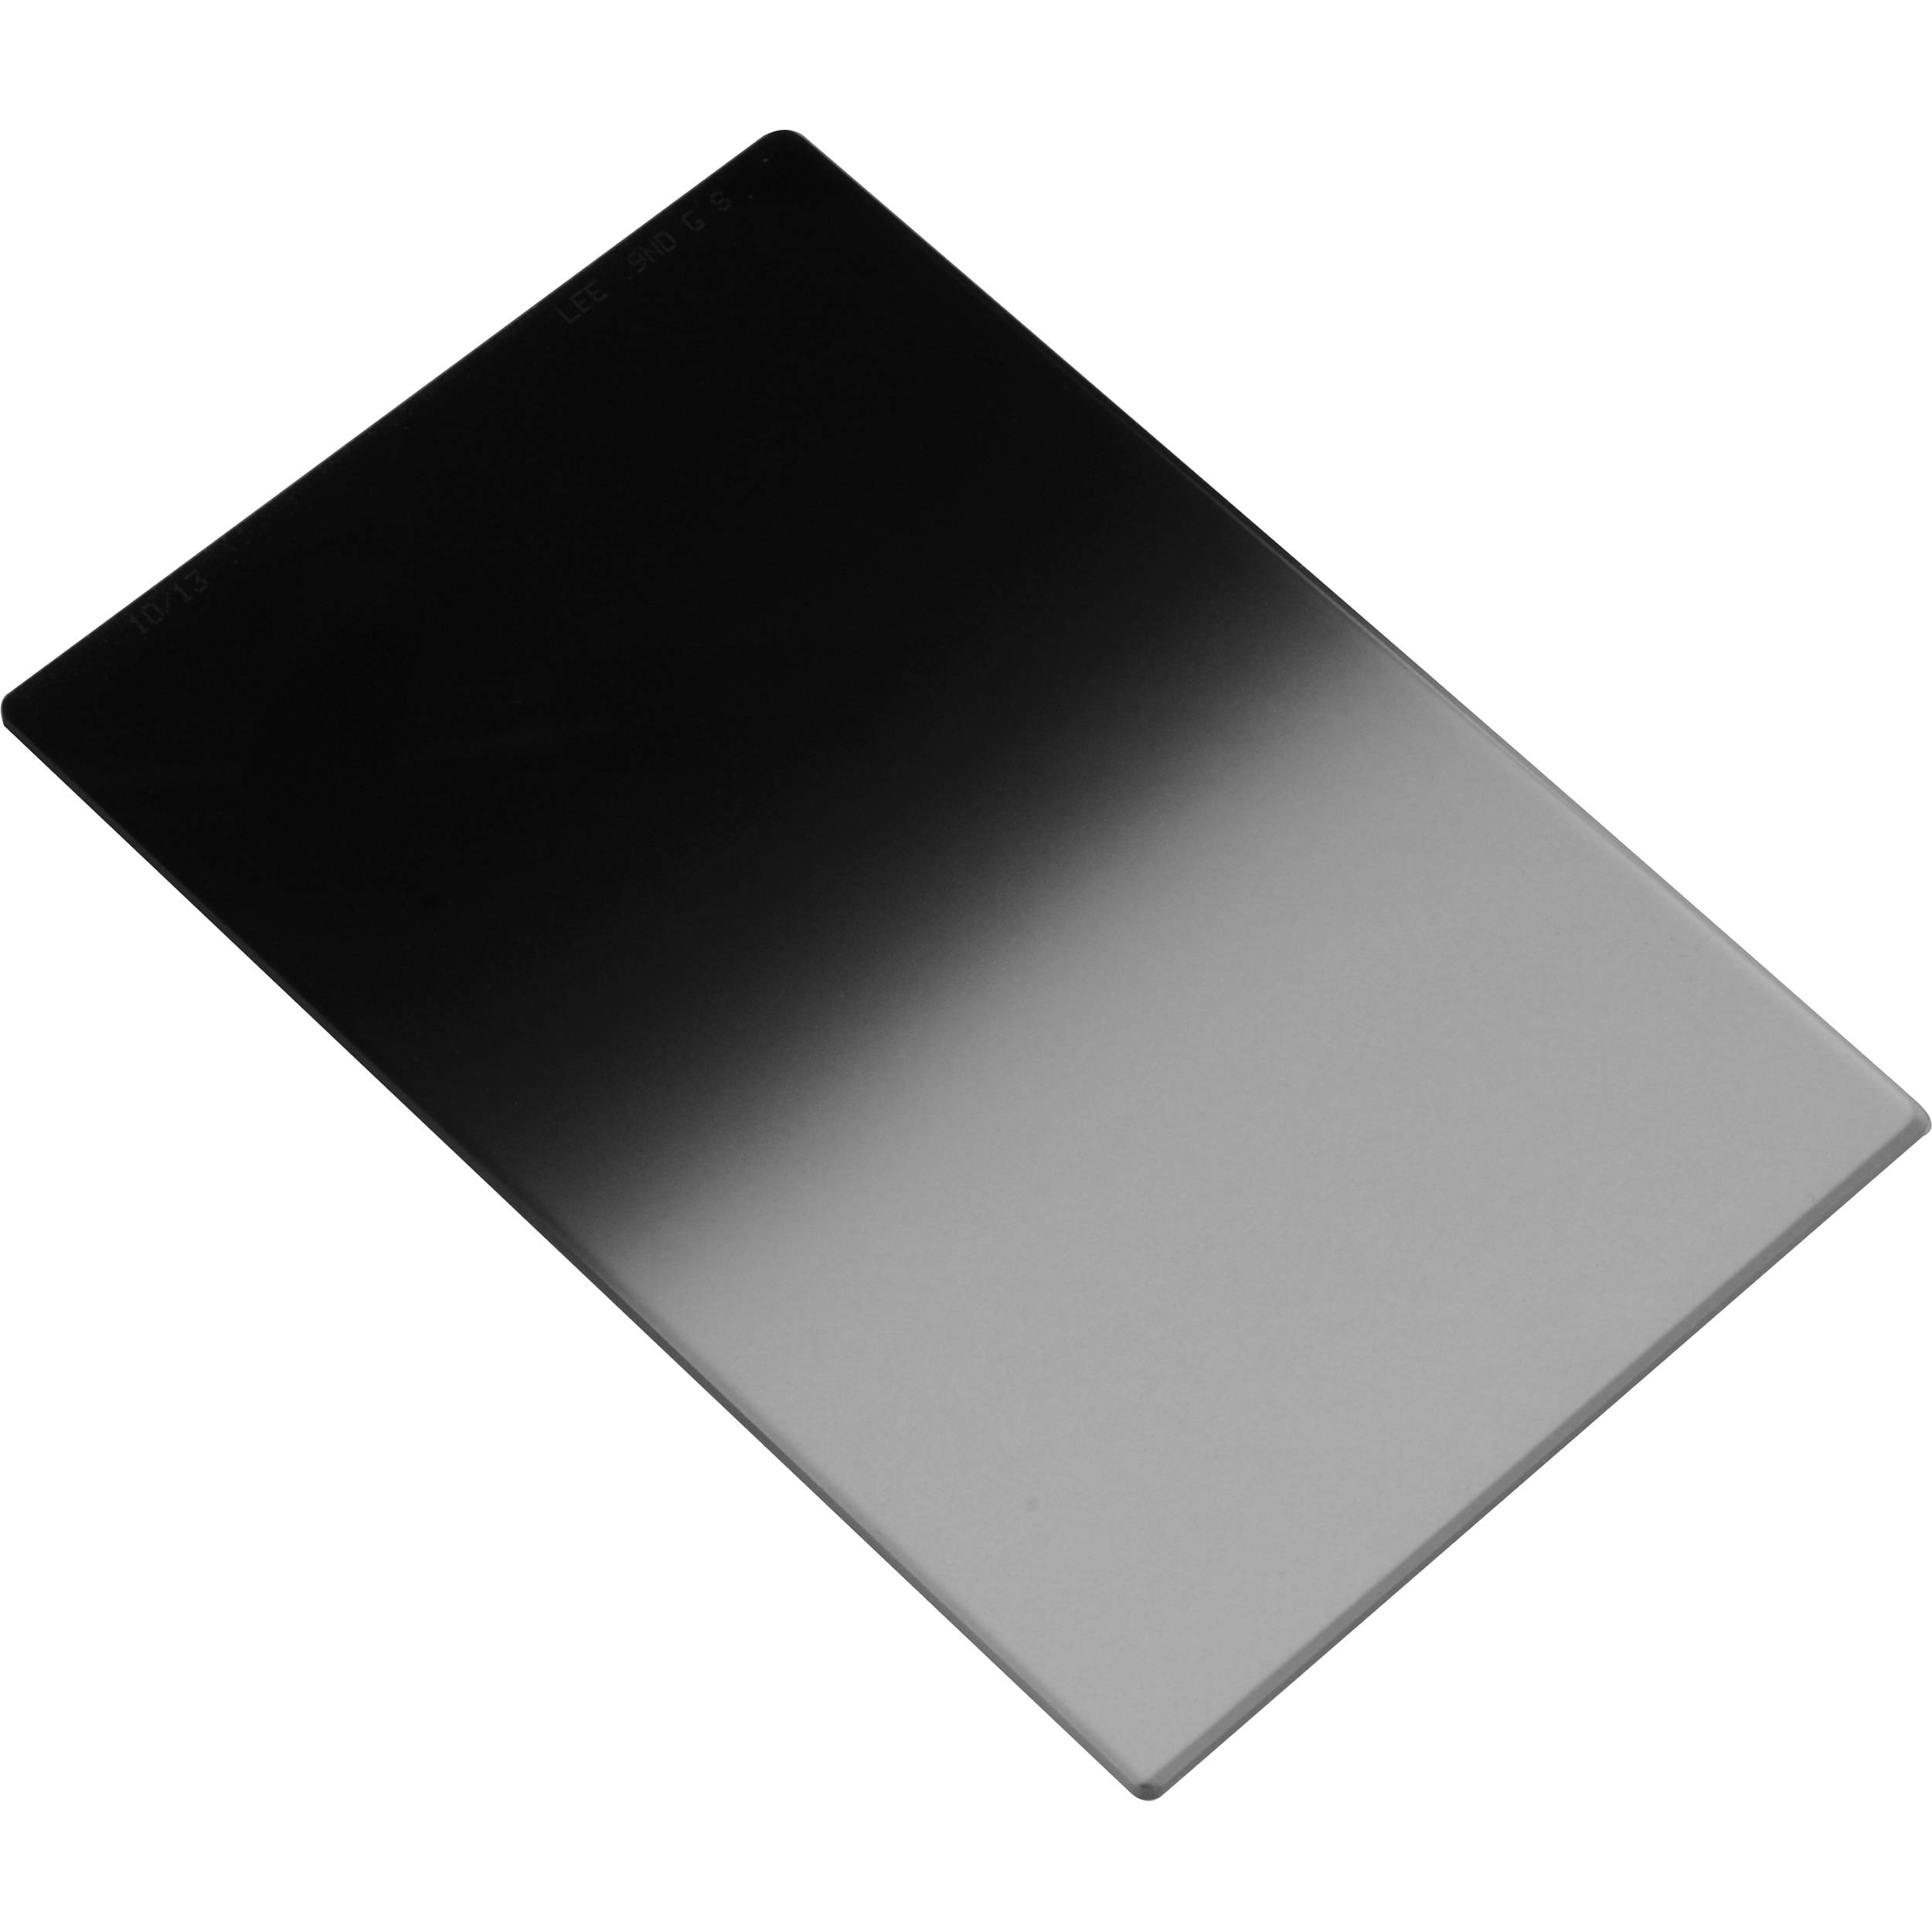 Lee Filters 4 x 6 Graduated Neutral Density 0.6 Soft Resin Filter